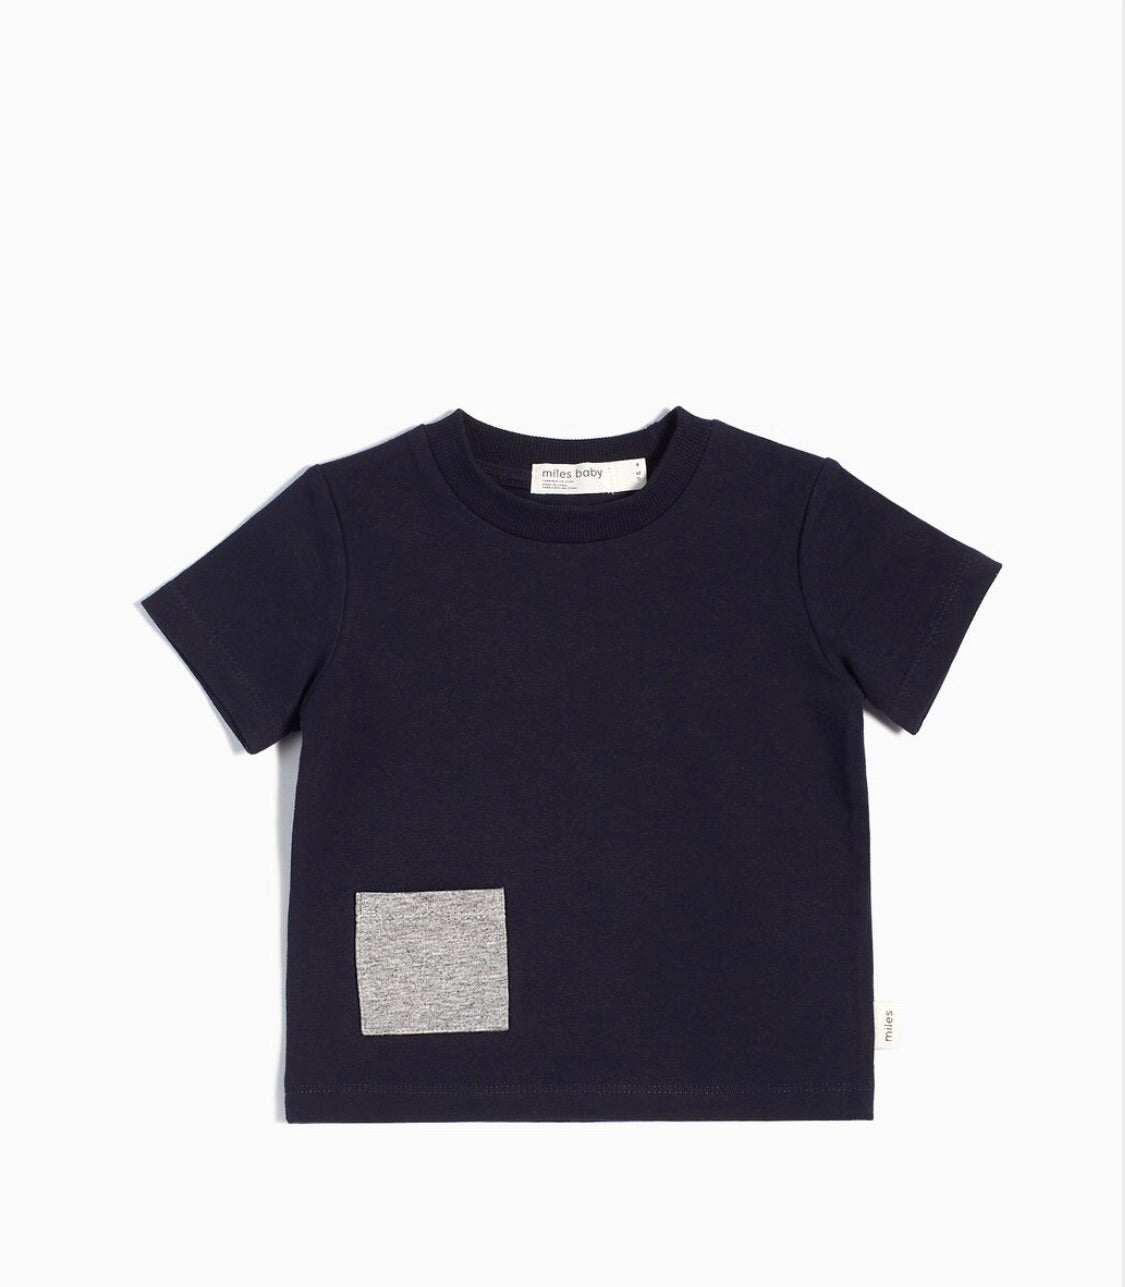 """MILES BASIC"" NAVY T-SHIRT WITH CONTRASTING PATCH POCKET - Camila New York"